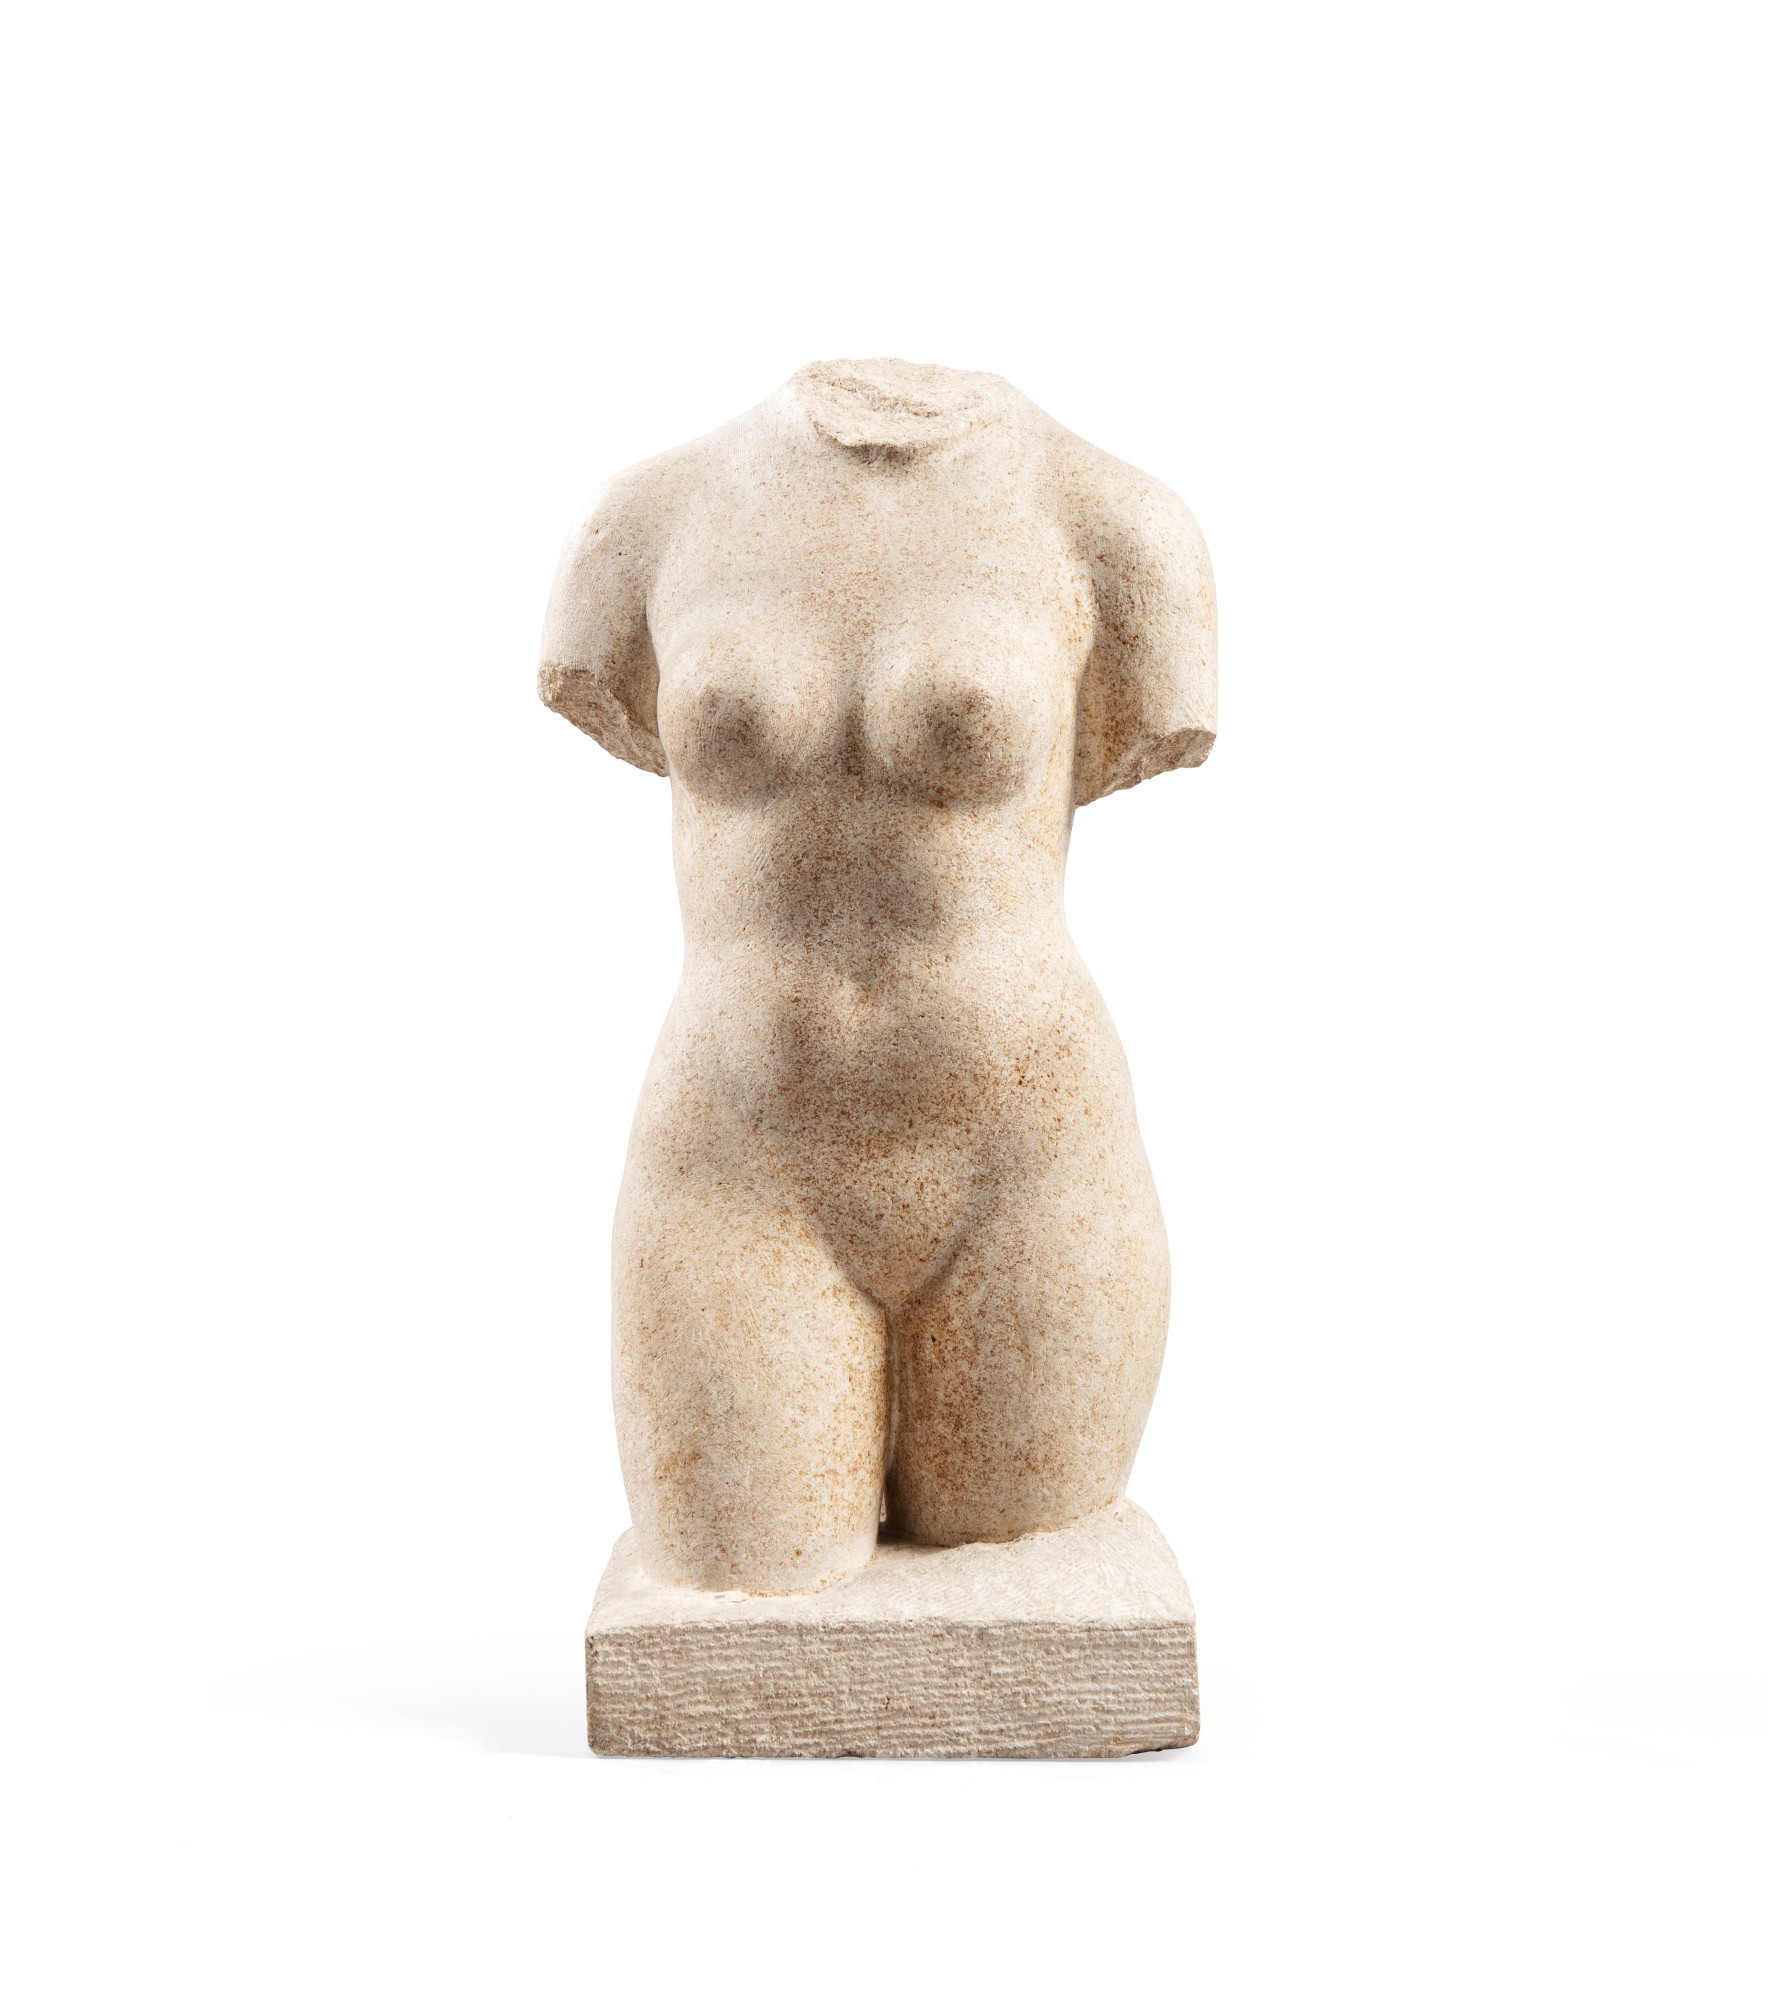 LOUIS DEJEAN | TORSO OF A WOMAN [TORSE FÉMININ]